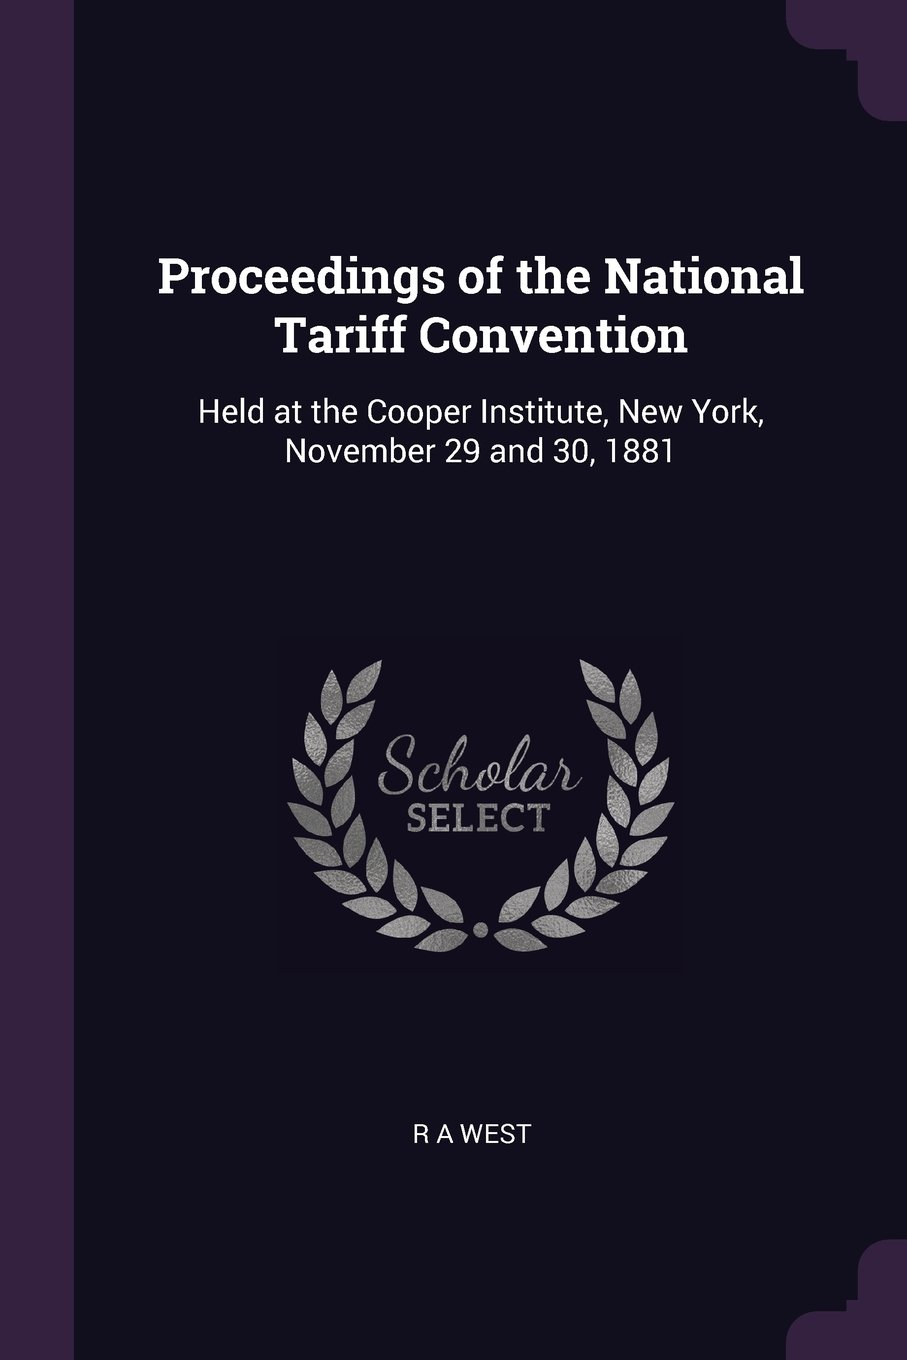 Proceedings of the National Tariff Convention: Held at the Cooper Institute, New York, November 29 and 30, 1881 PDF